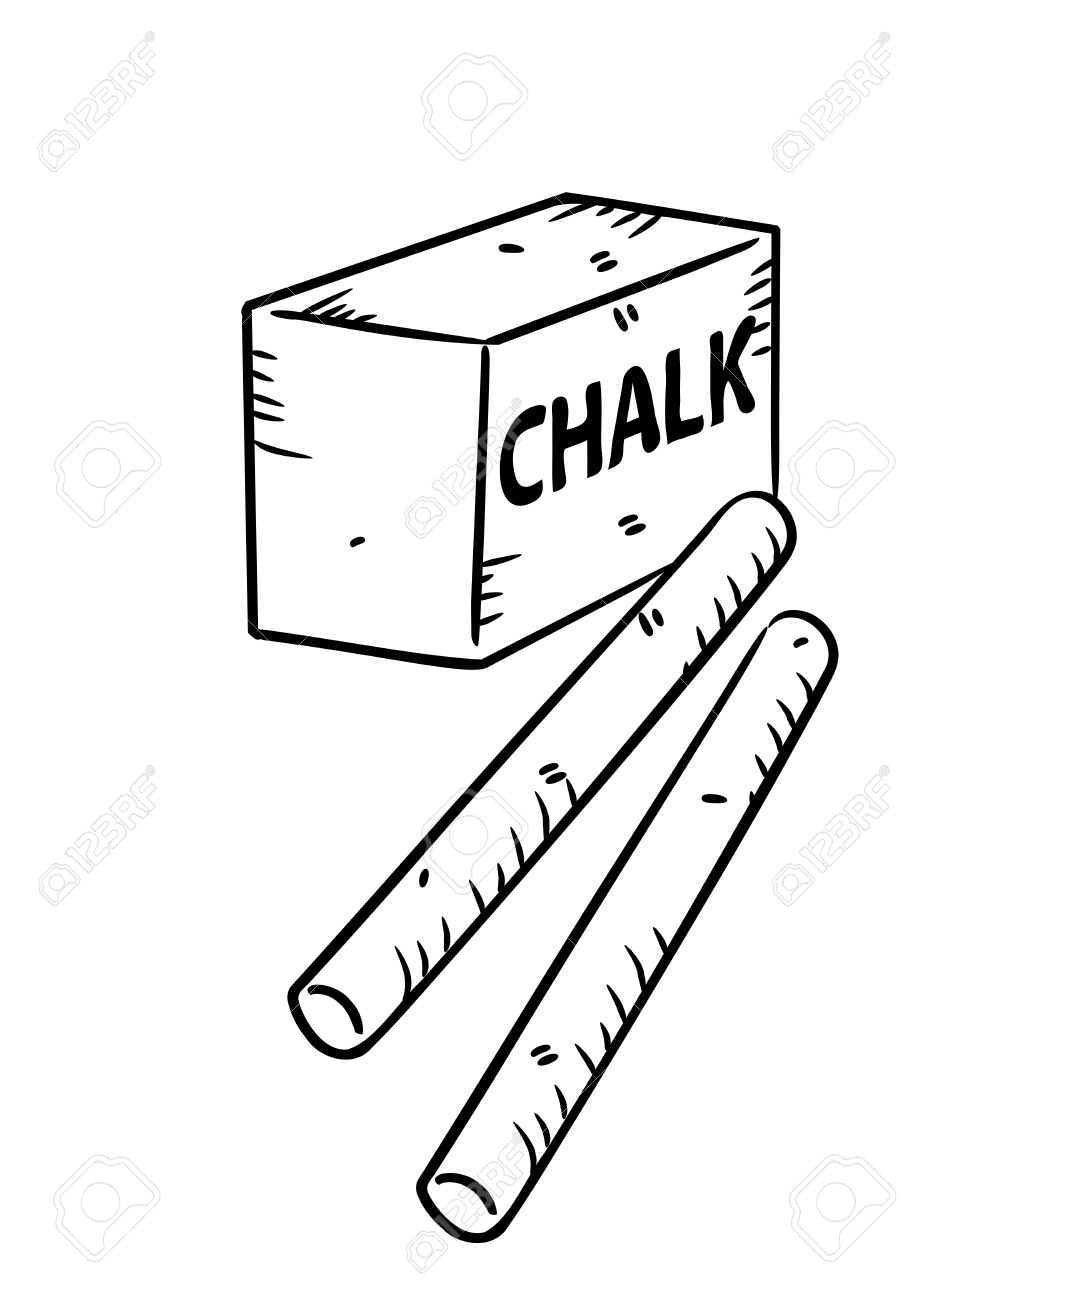 1087x1300 Chalk In Doodle Style Royalty Free Cliparts, Vectors, And Stock